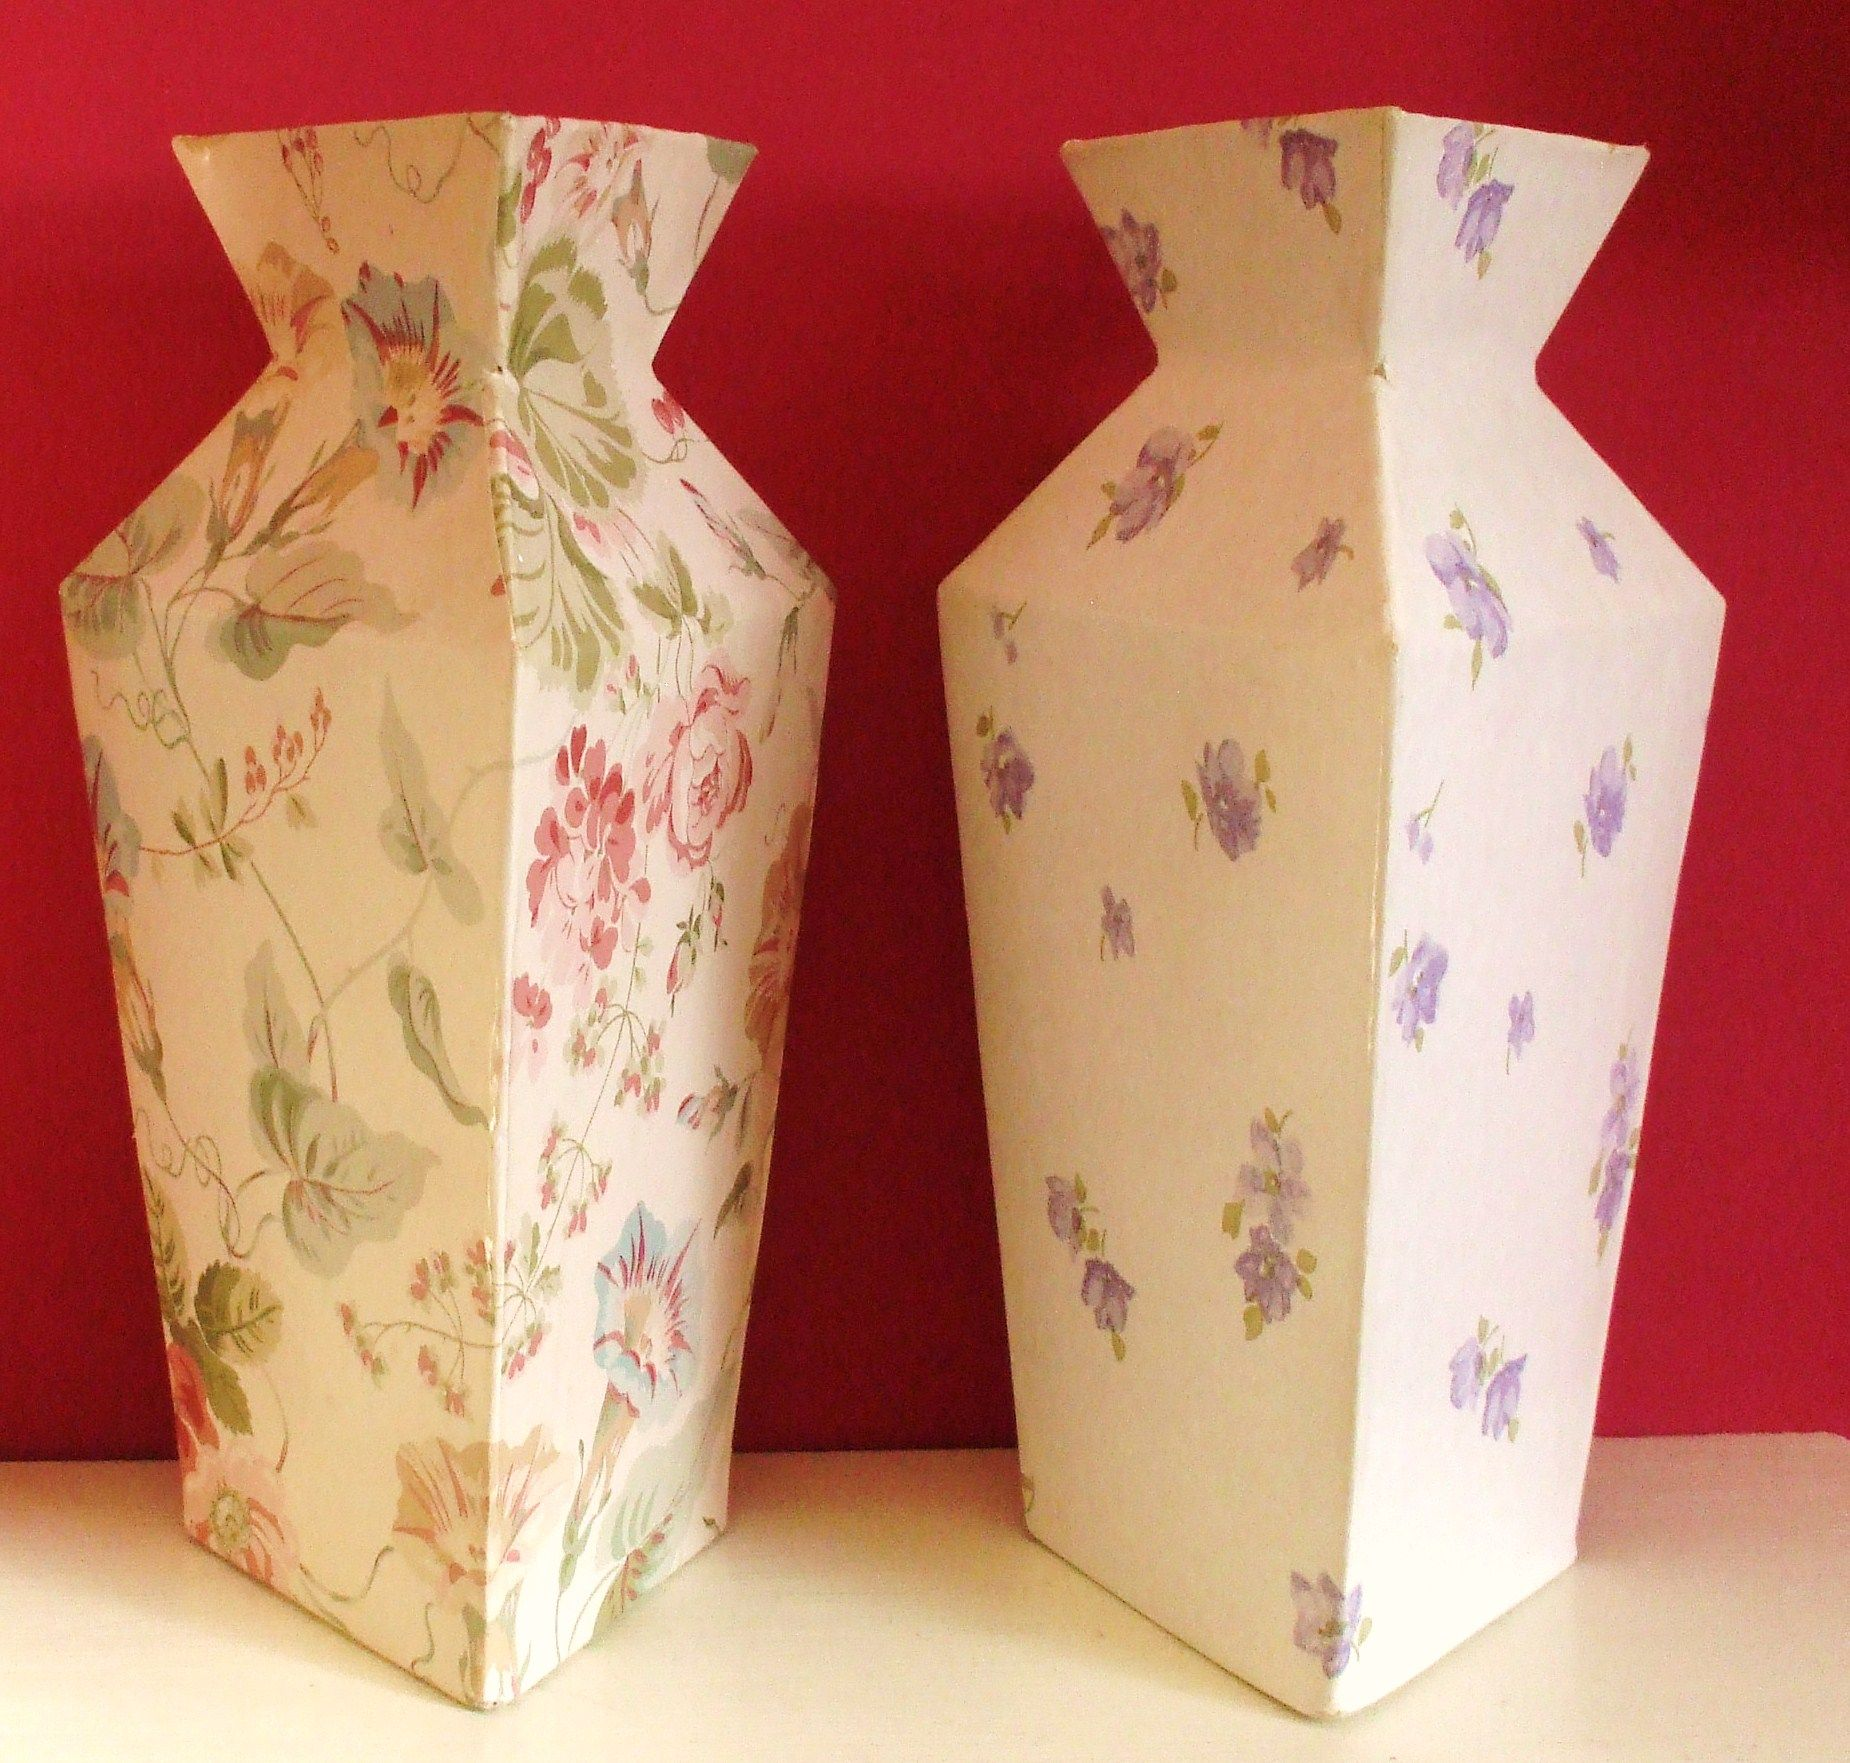 Small paper mache vases for faux flowers projects small paper mache vases for faux flowers reviewsmspy